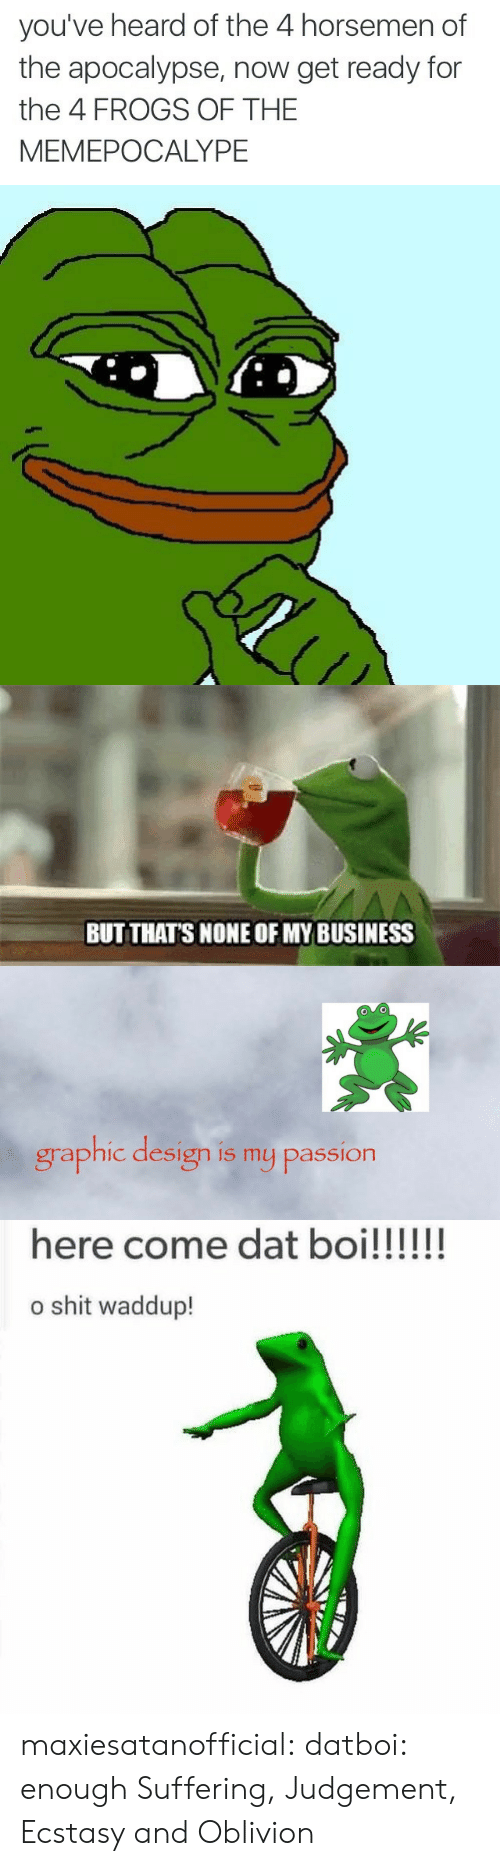 Shit, Target, and Tumblr: you've heard of the 4 horsemen of  the apocalypse, now get ready for  the 4 FROGS OF THE  MEMEPOCALYPE   BUT THATS NONE OF MY BUSINESS   graphic design is my passion   o shit waddup! maxiesatanofficial:  datboi:  enough  Suffering, Judgement, Ecstasy and Oblivion